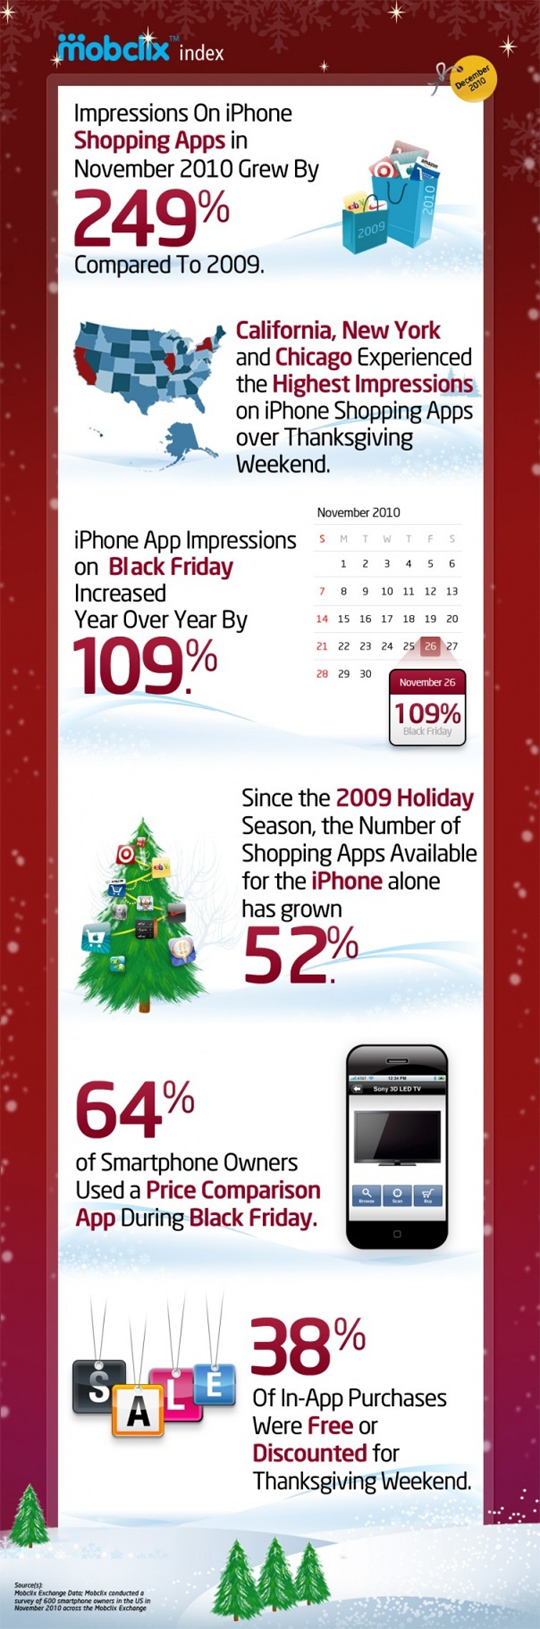 7 Revealing Infographics About [ONLINE] Holiday Sales Trends 3